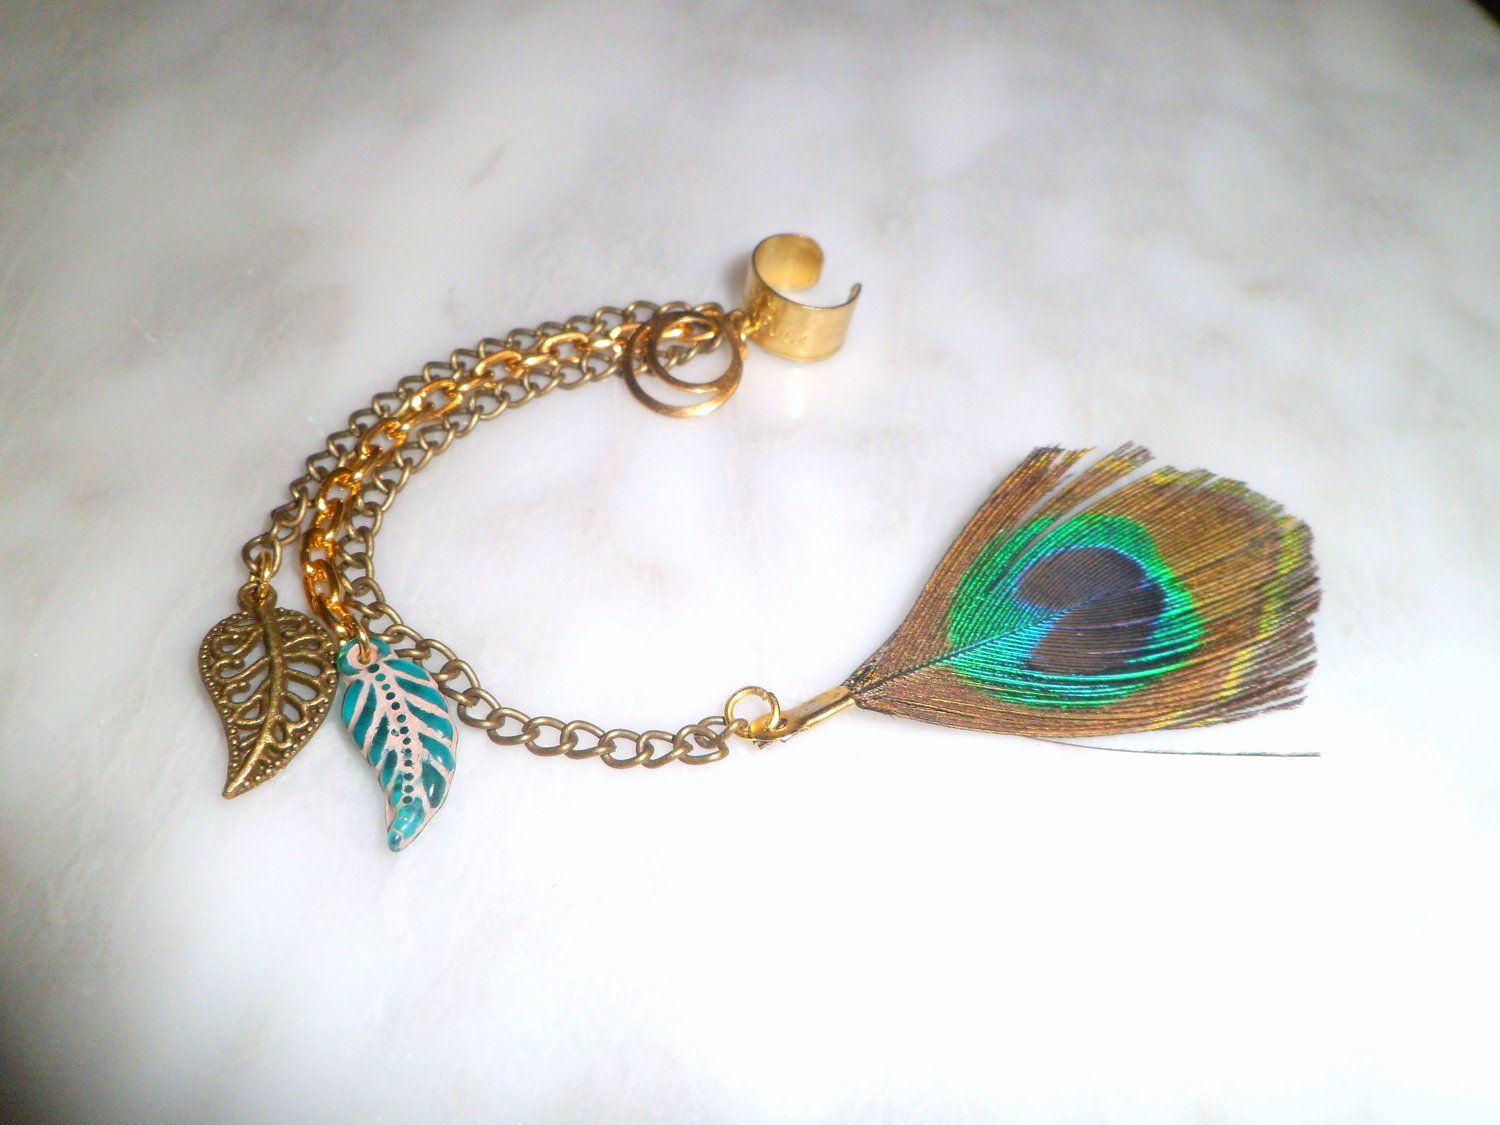 Cartilage Ear cuff wrap with Peacock Feather, Dangle Charms, and Multiple chains No piercing needed.